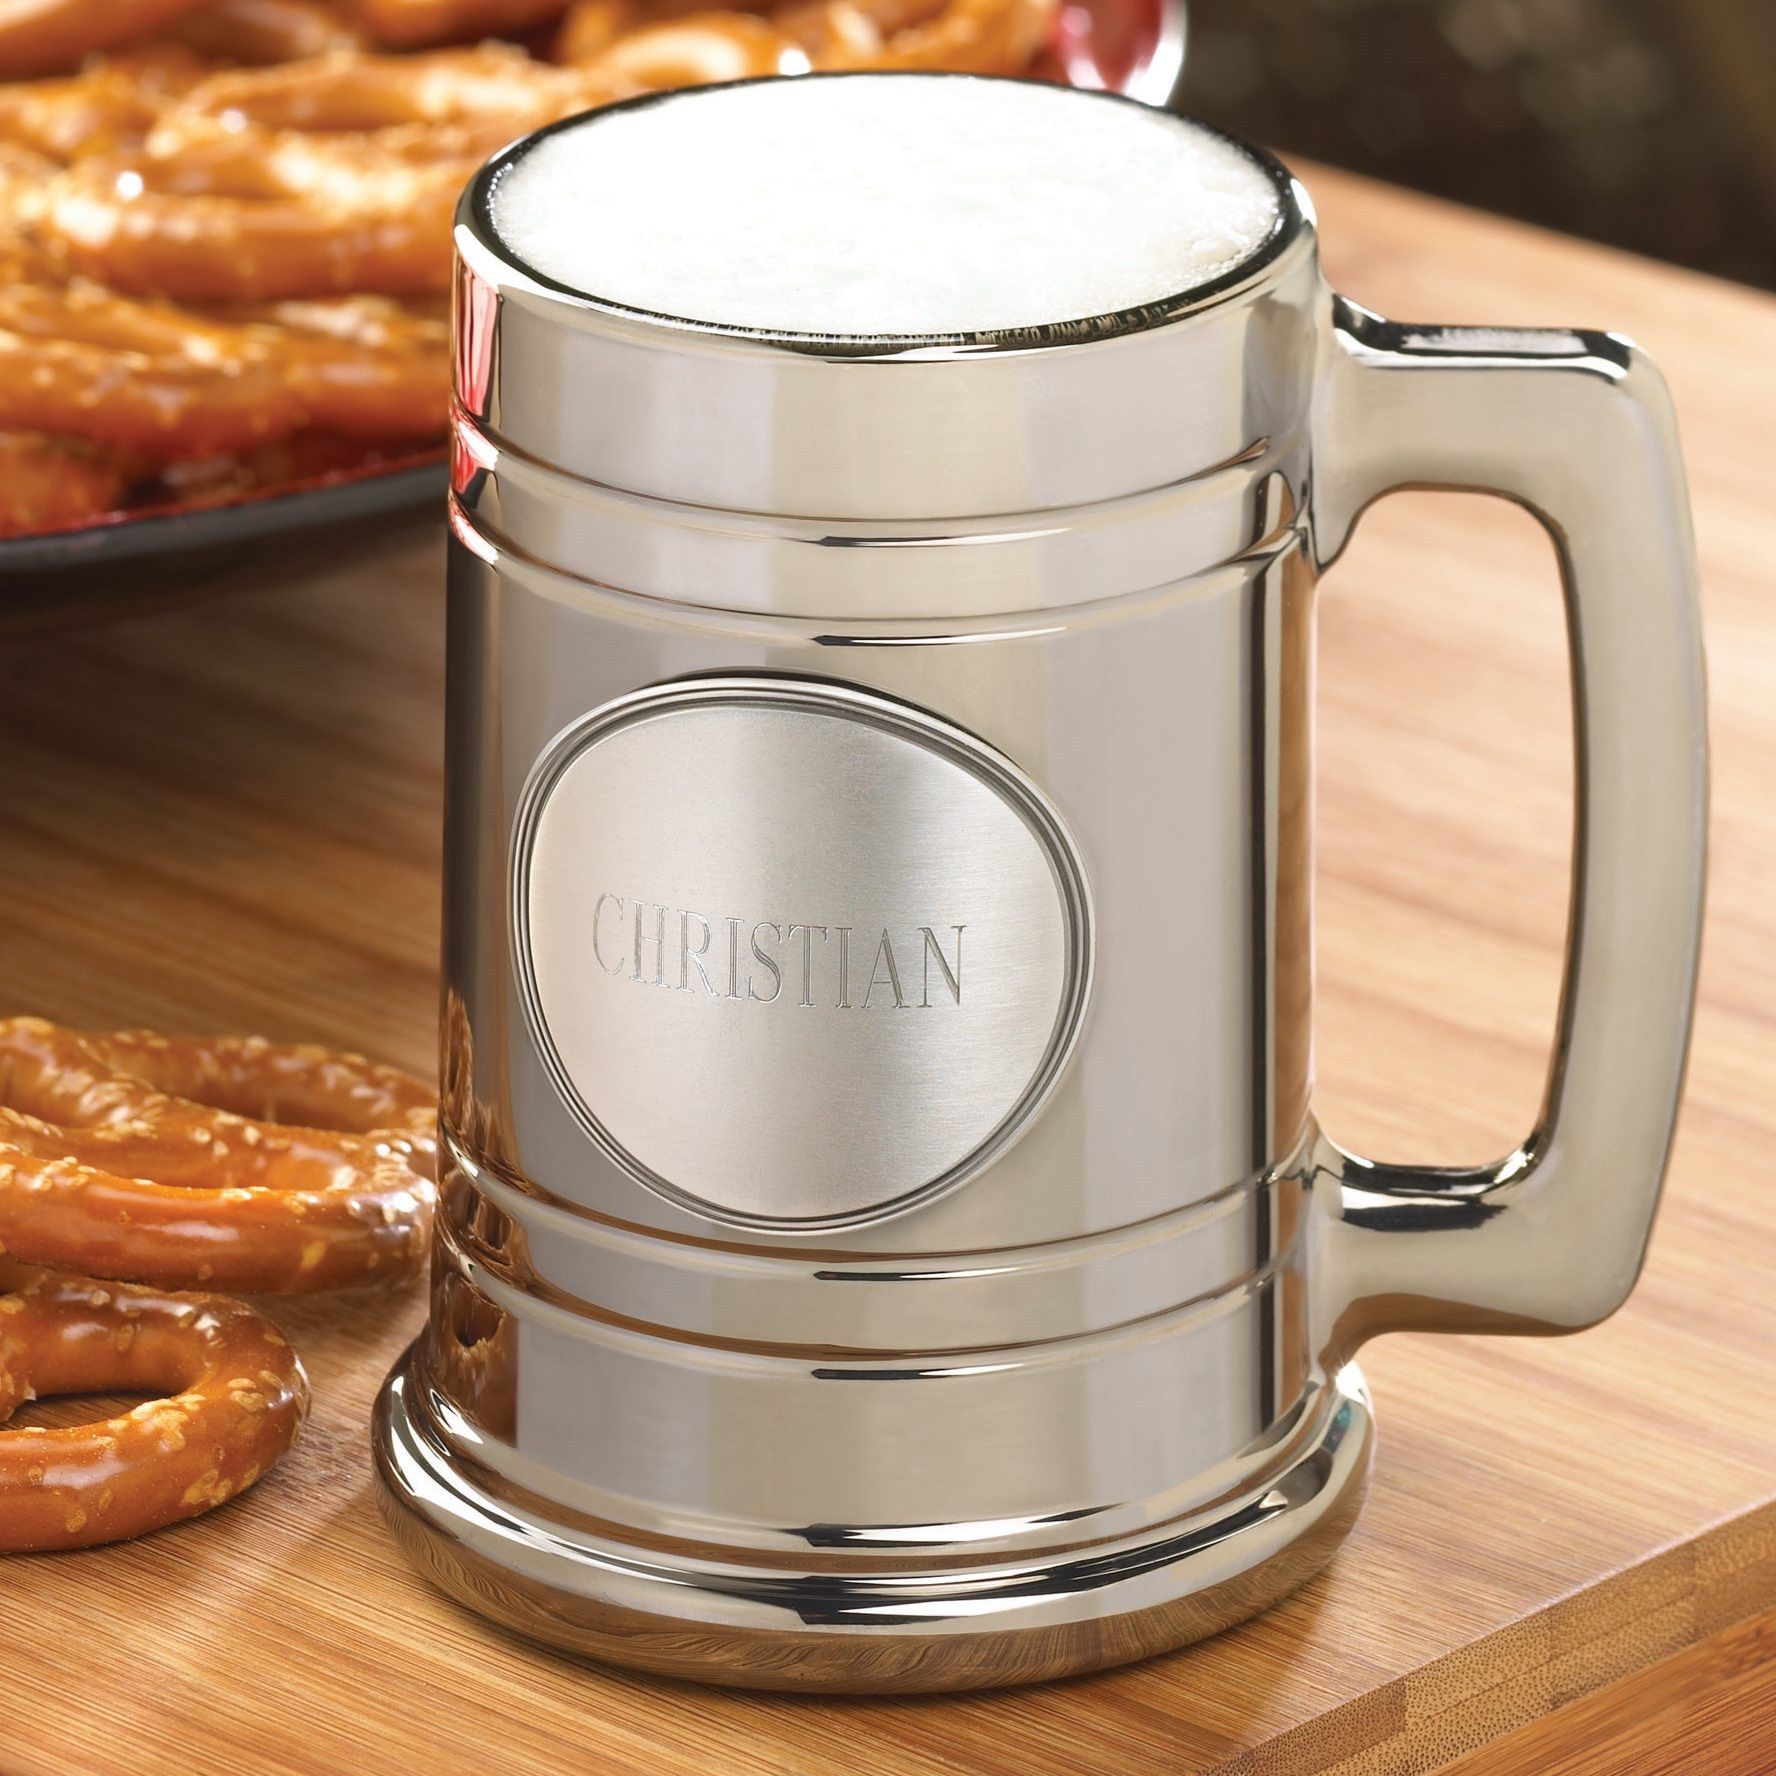 Give your groomsman or best beer drinking pal a Metallic Mug with a personalized Pewter Medallion! They will be tossing them back in style with this classy metallic beer mug. Though the mug looks like it is made from solid metal, it is actually glass coat #mug